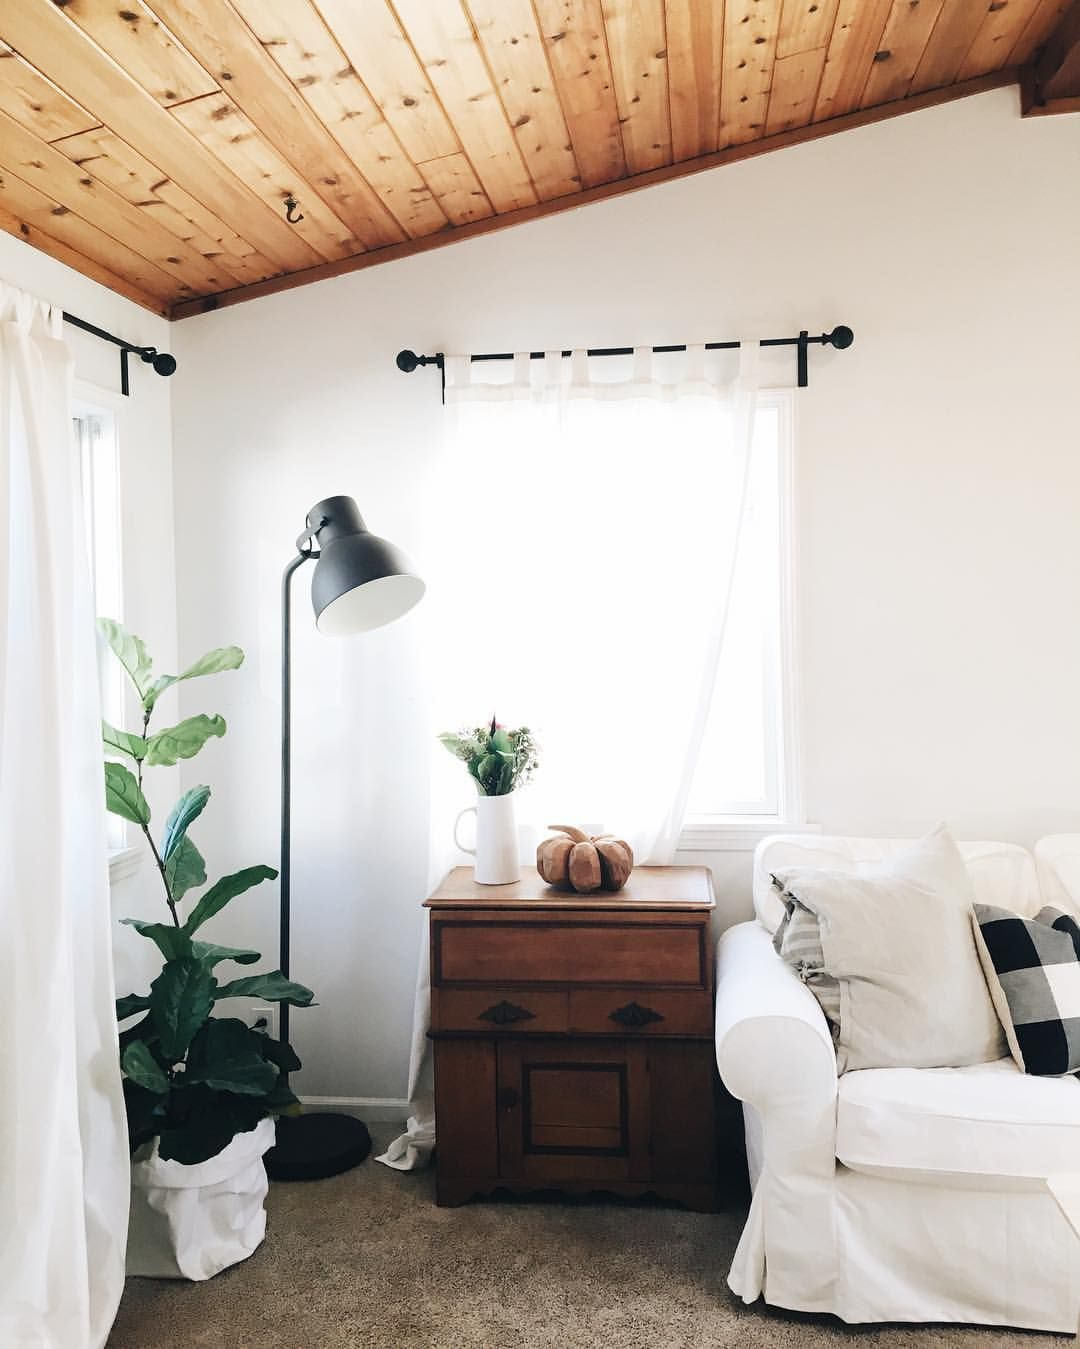 White Walls And Wood Planked Ceiling Wood Plank Ceiling Wood